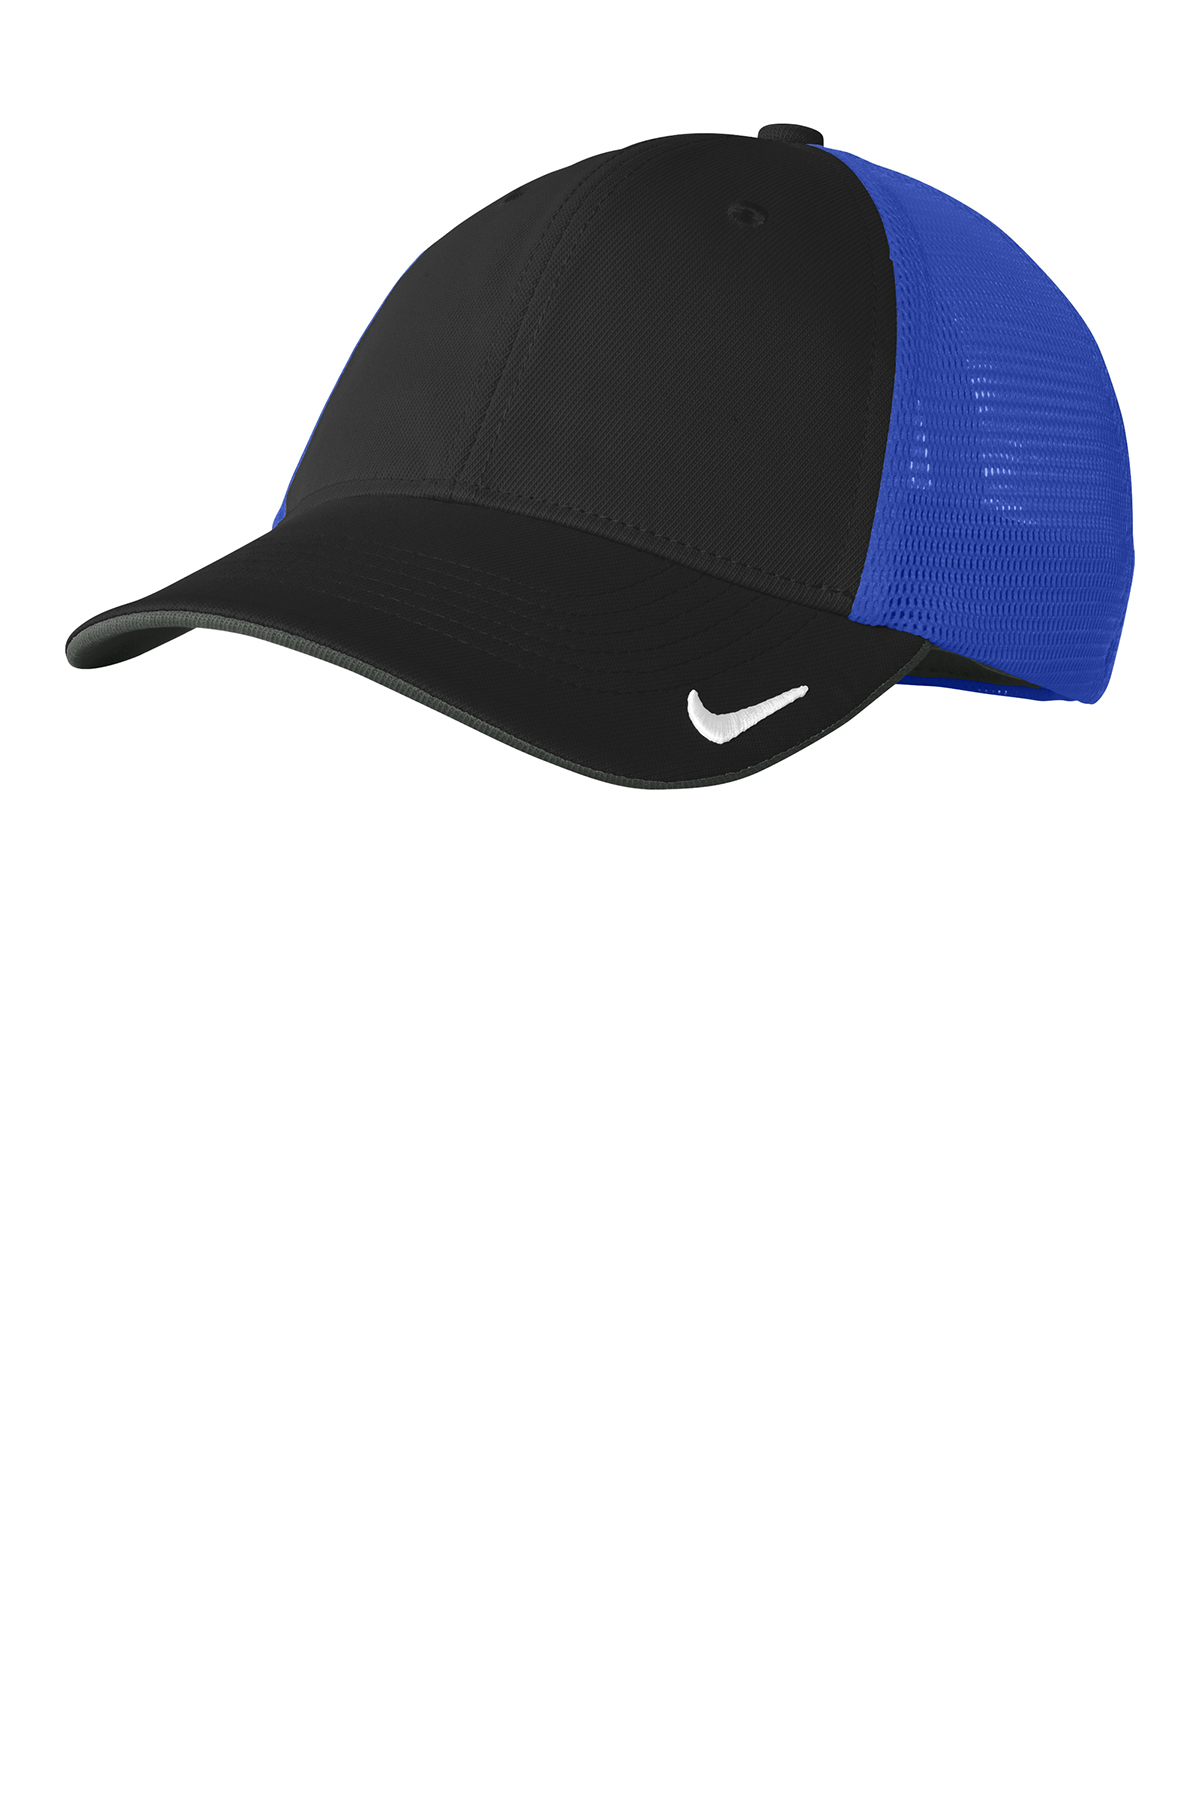 e38933c3845  889302 Mesh Back Cap II custom embroidered or printed with your logo.